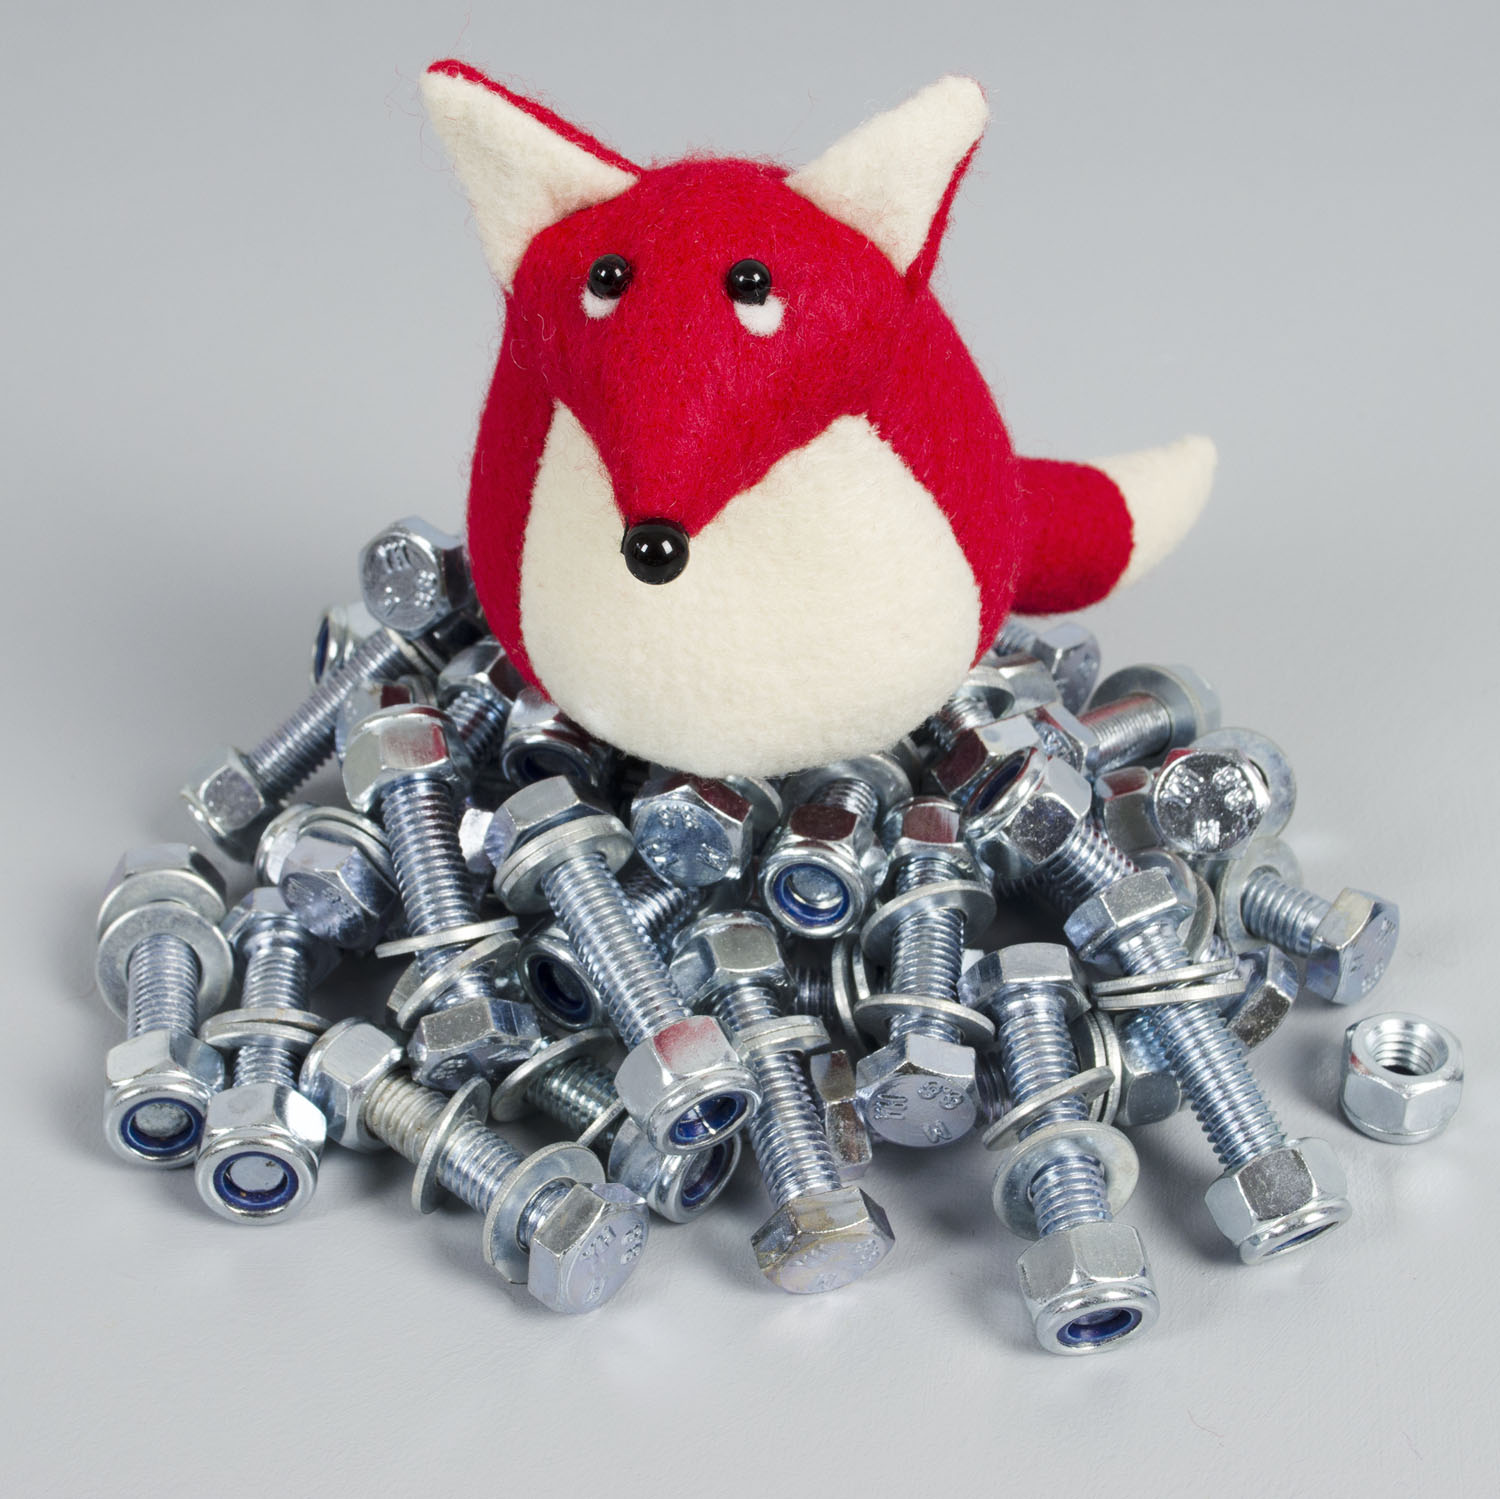 Findlay The Fox paperweight handmade from Kunin eco-fi felt made from plastic bottles | by Bilberry Woods.jpg